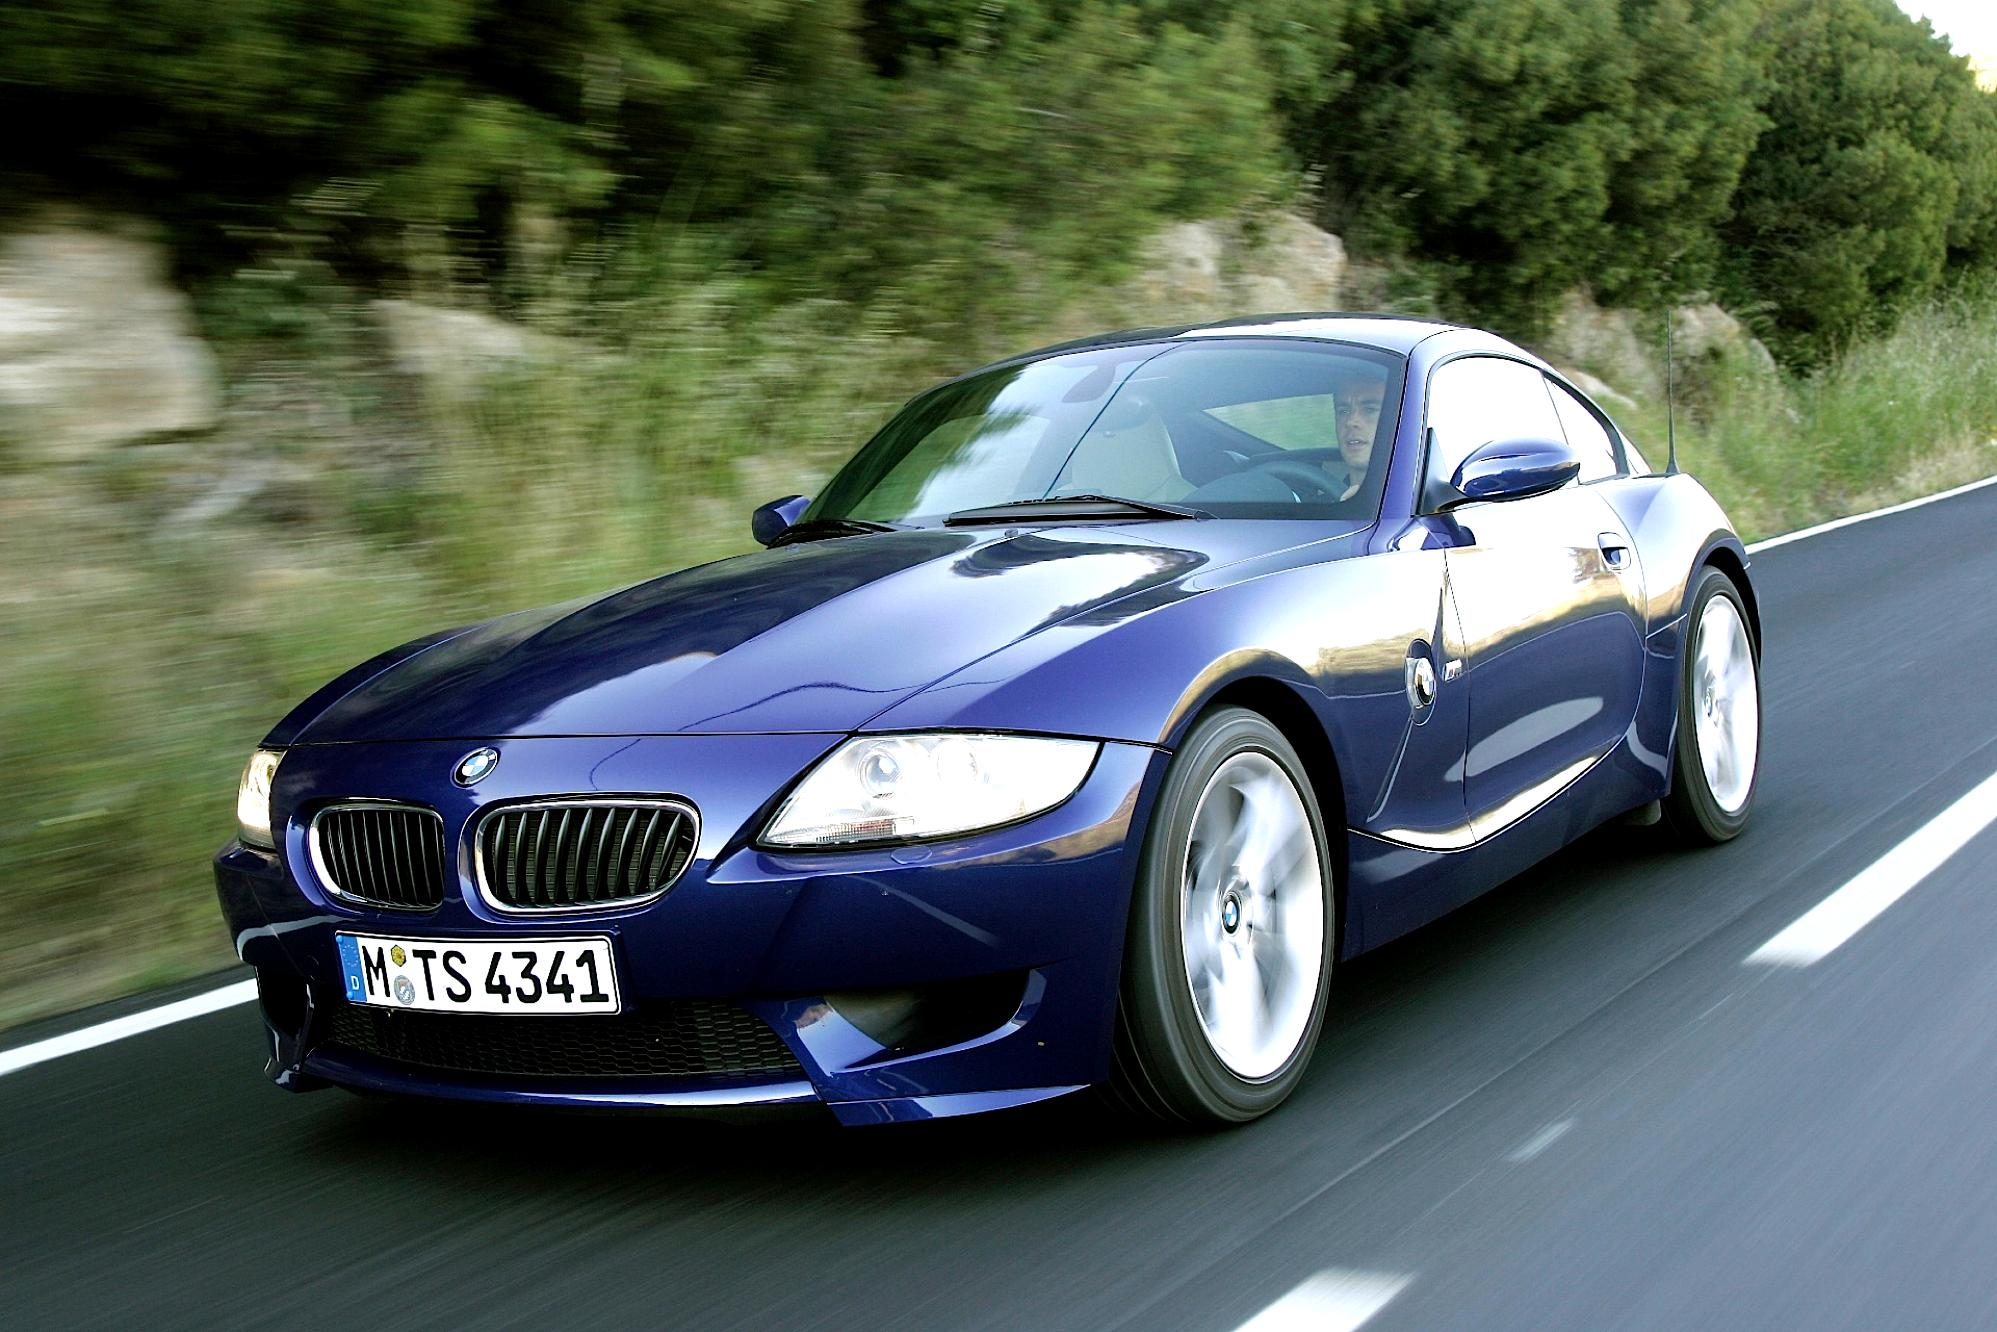 bmw z4 m coupe e86 2006 photos 17 on. Black Bedroom Furniture Sets. Home Design Ideas